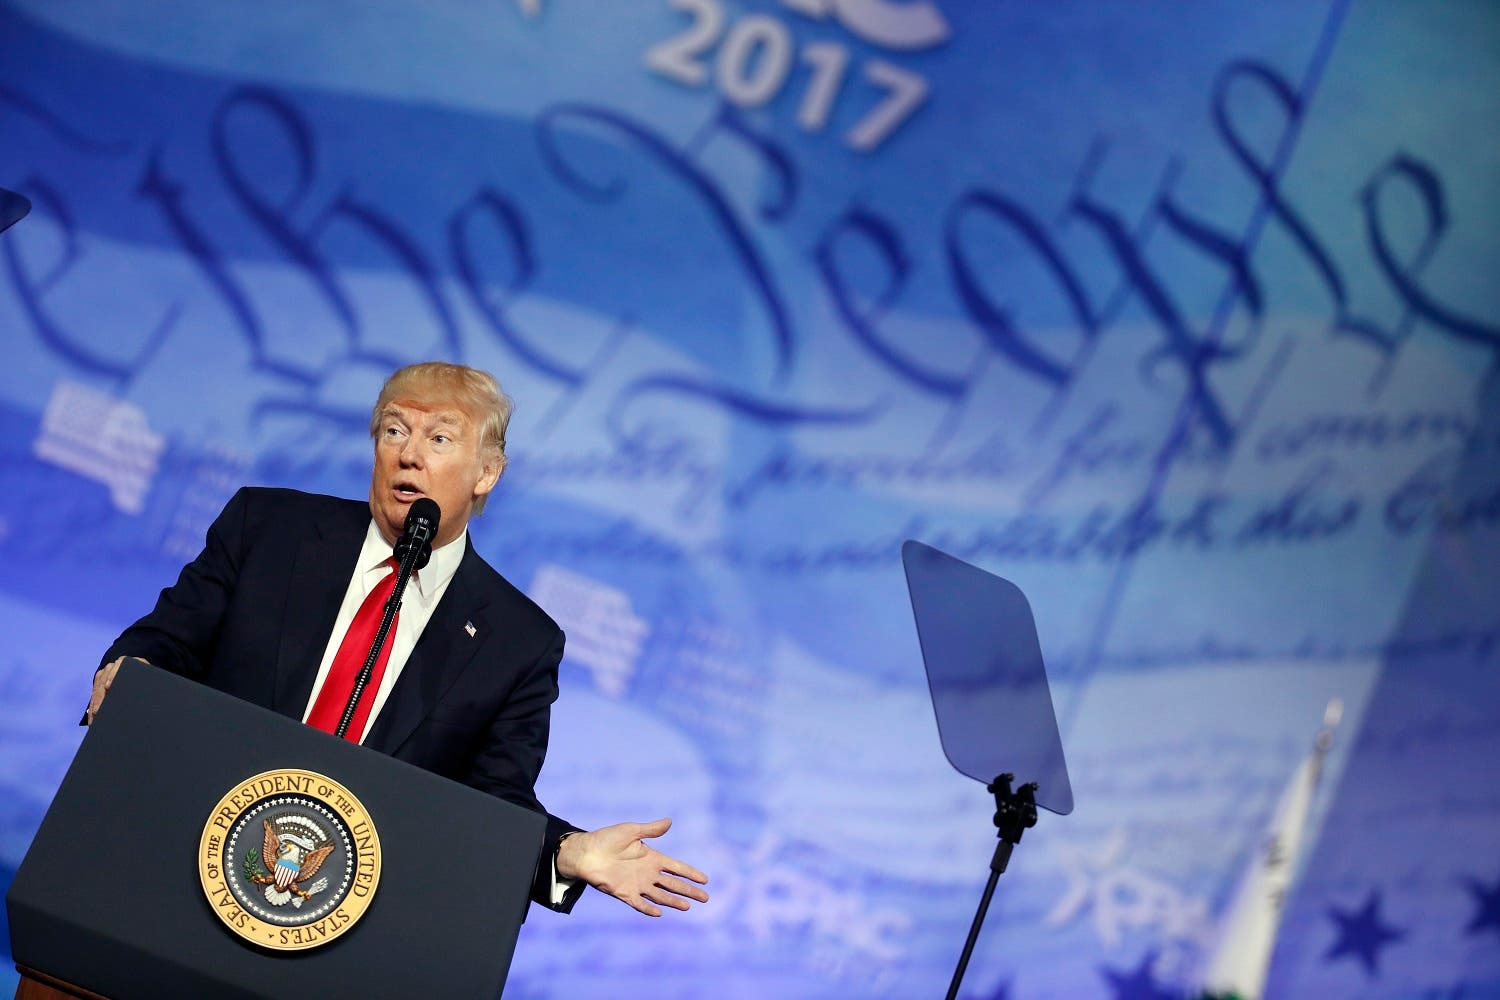 President Donald Trump speaks at the Conservative Political Action Conference (CPAC), Friday, Feb. 24, 2017, in Oxon Hill, Md. (AP)